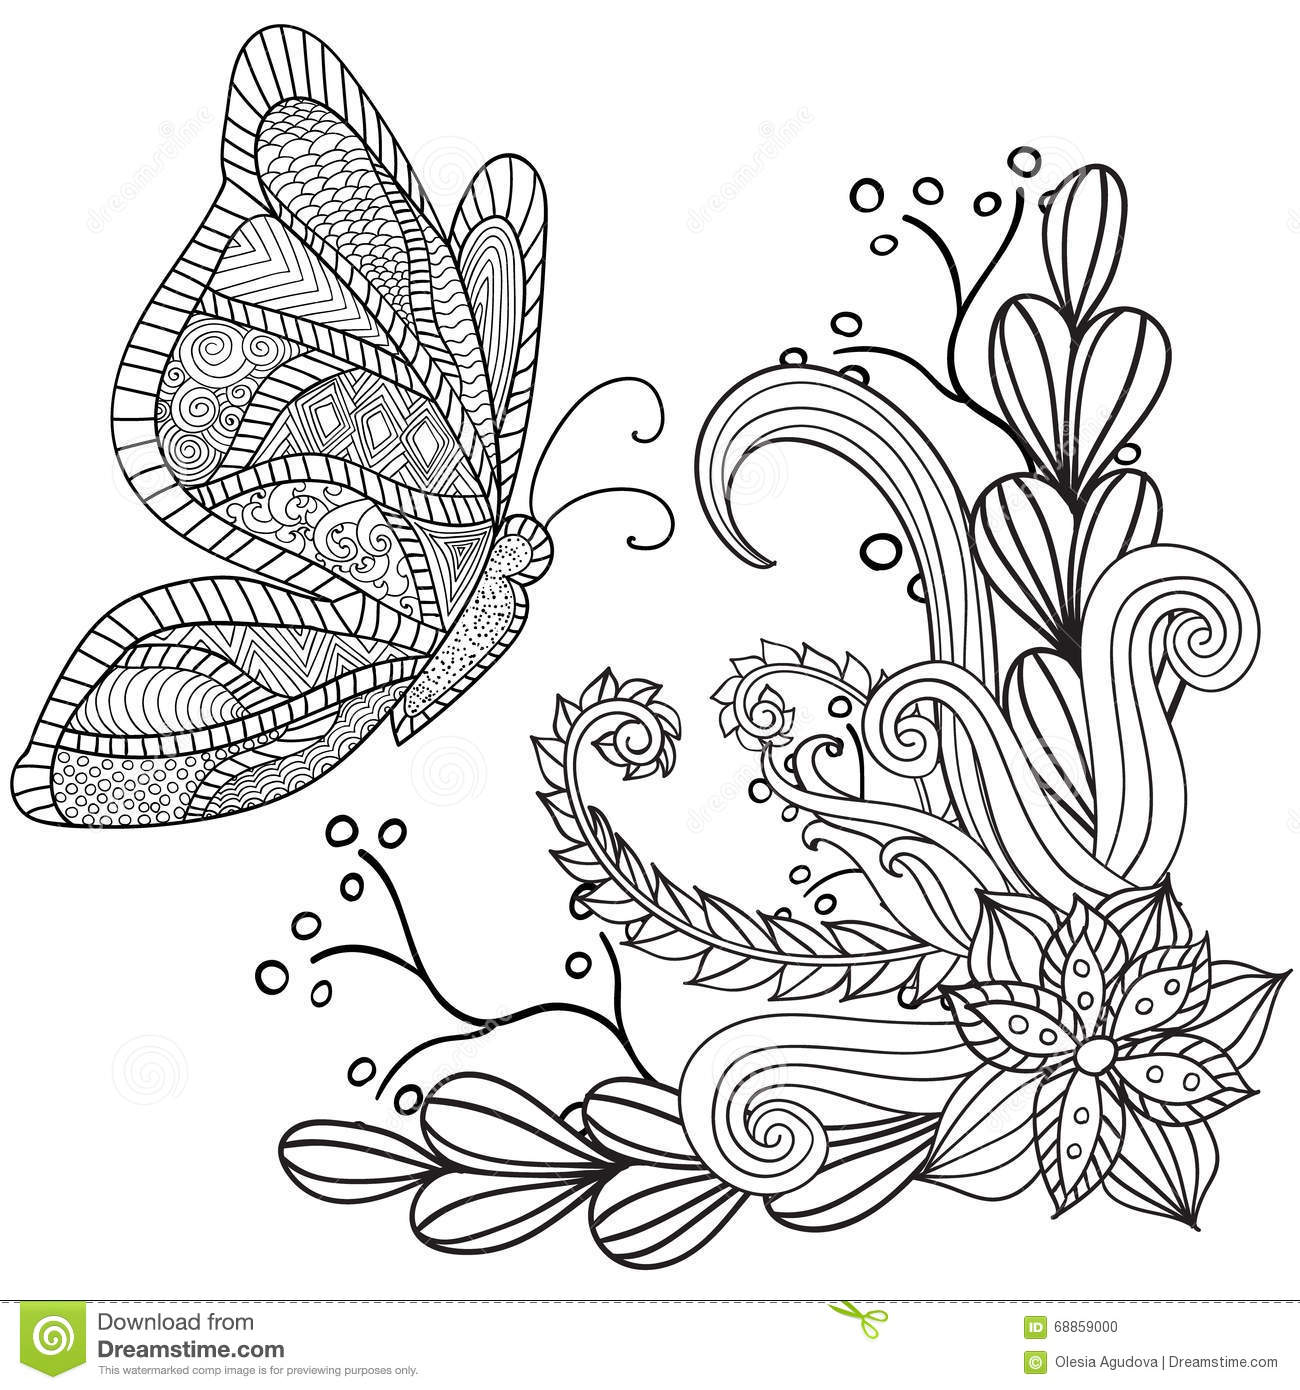 Hand Drawn Artistic Ethnic Ornamental Patterned Floral